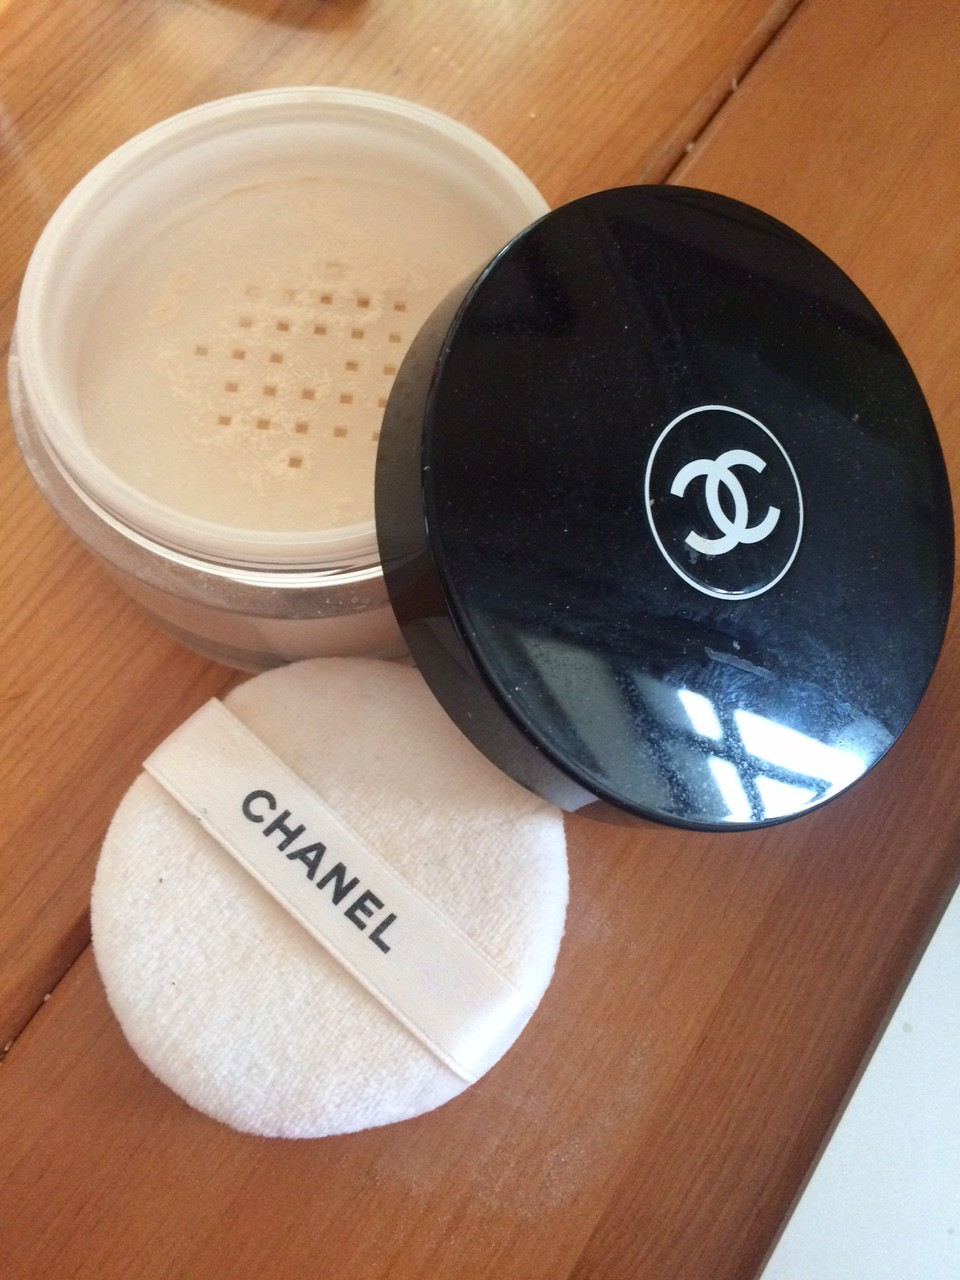 Compact and loose powder. Which is better